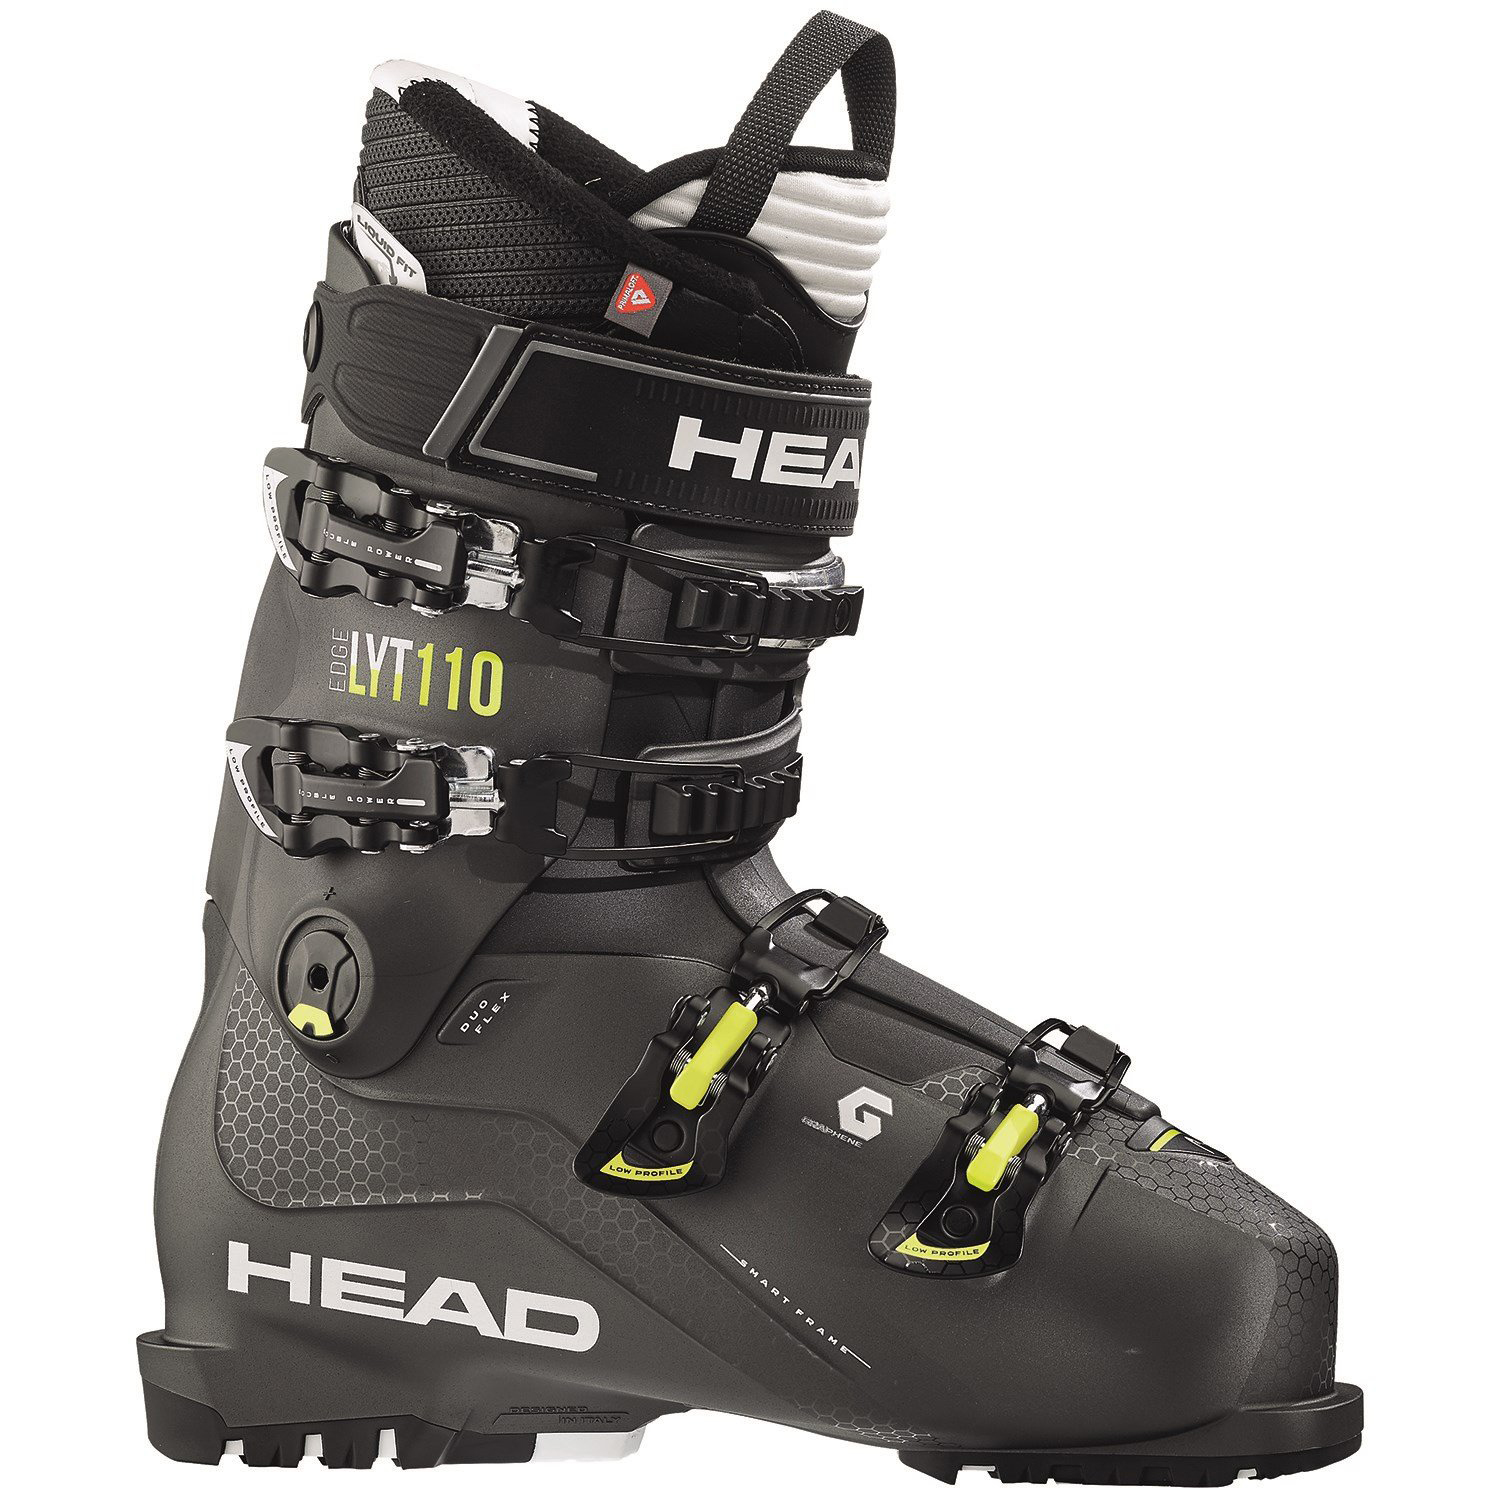 head-edge-lyt-110-alpine-ski-boots-2021-